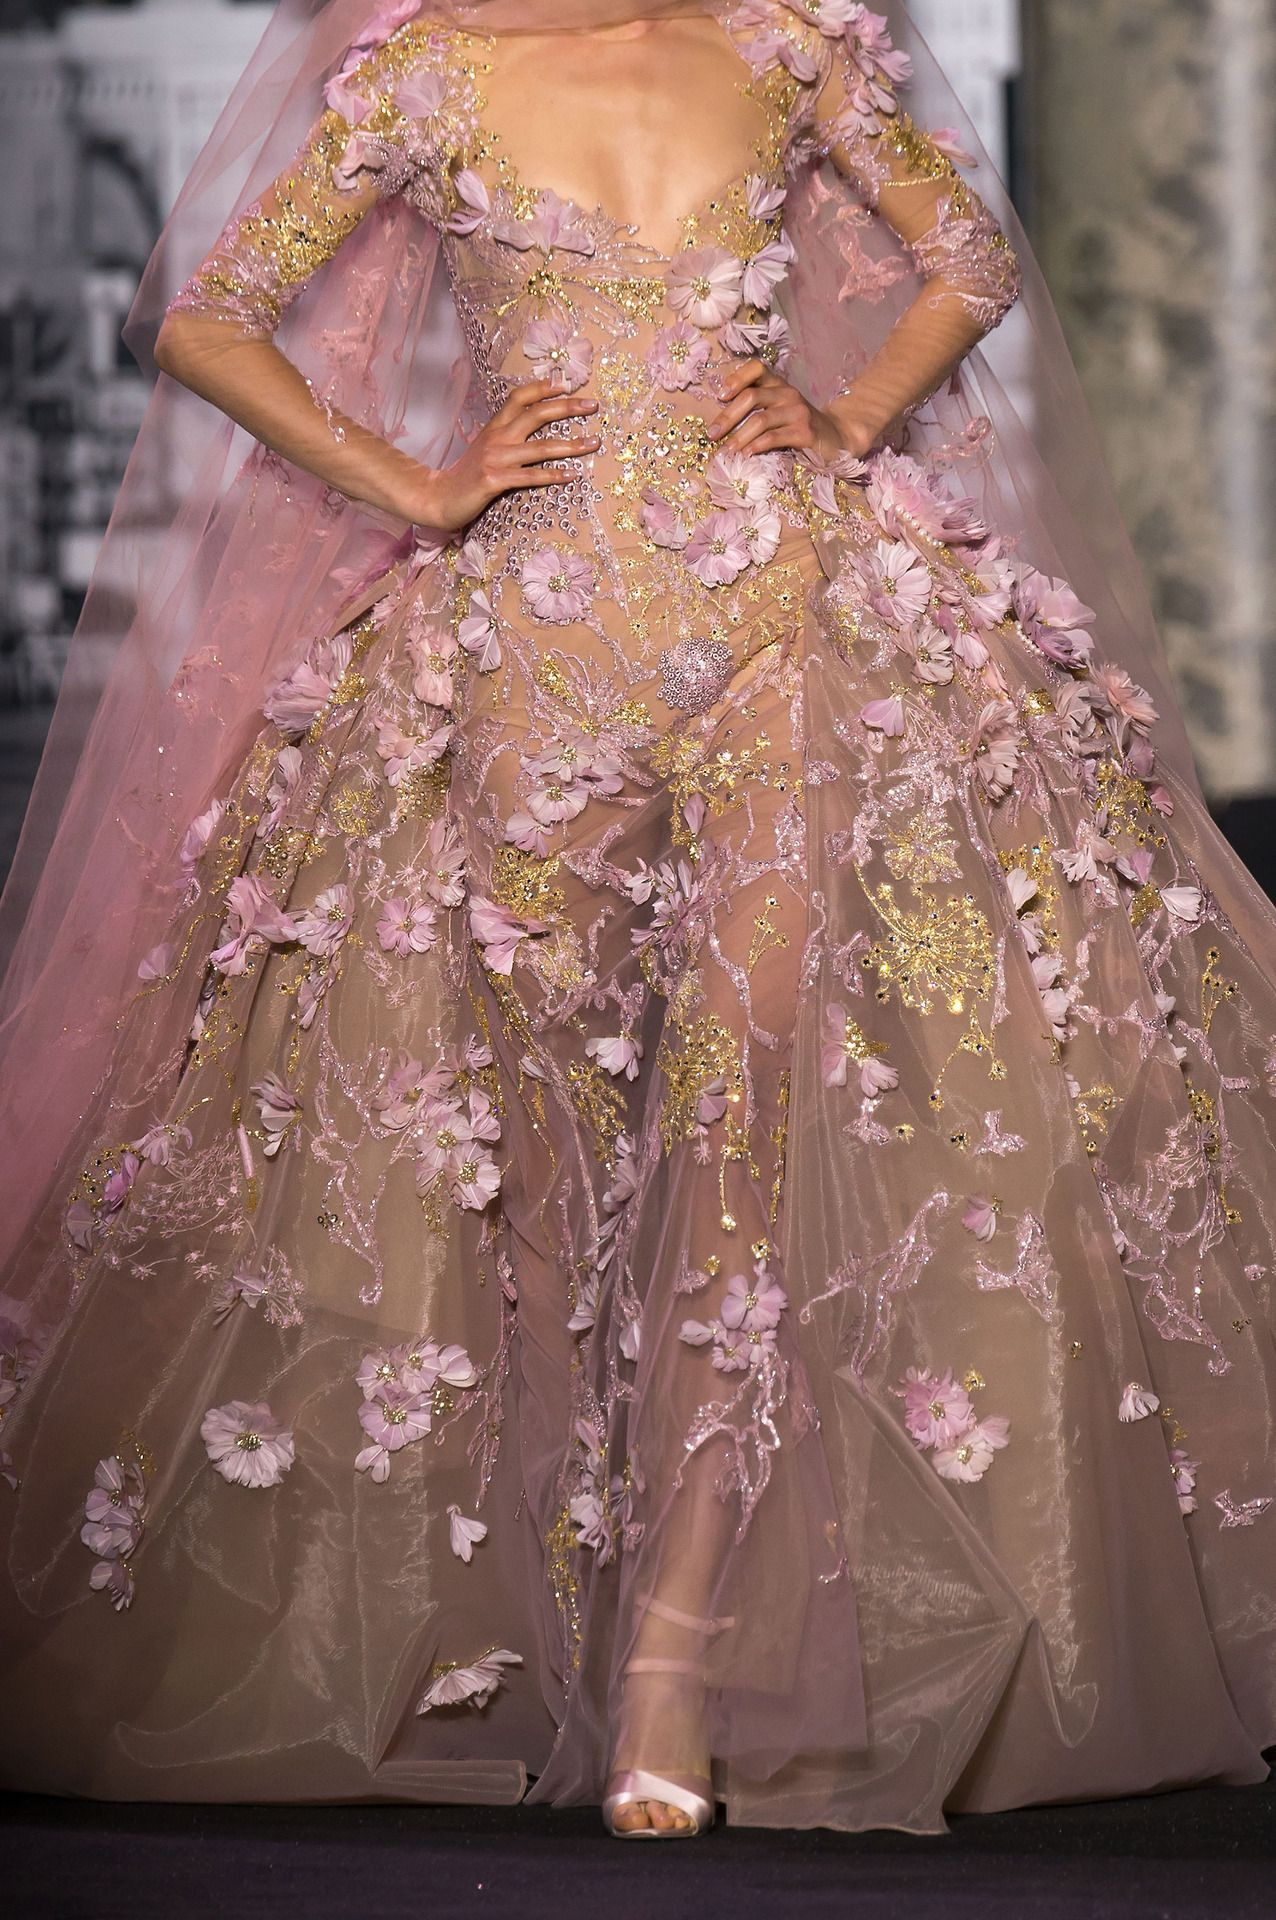 It's Couture... — analife: Elie Saab // Haute Couture - Fall 2016